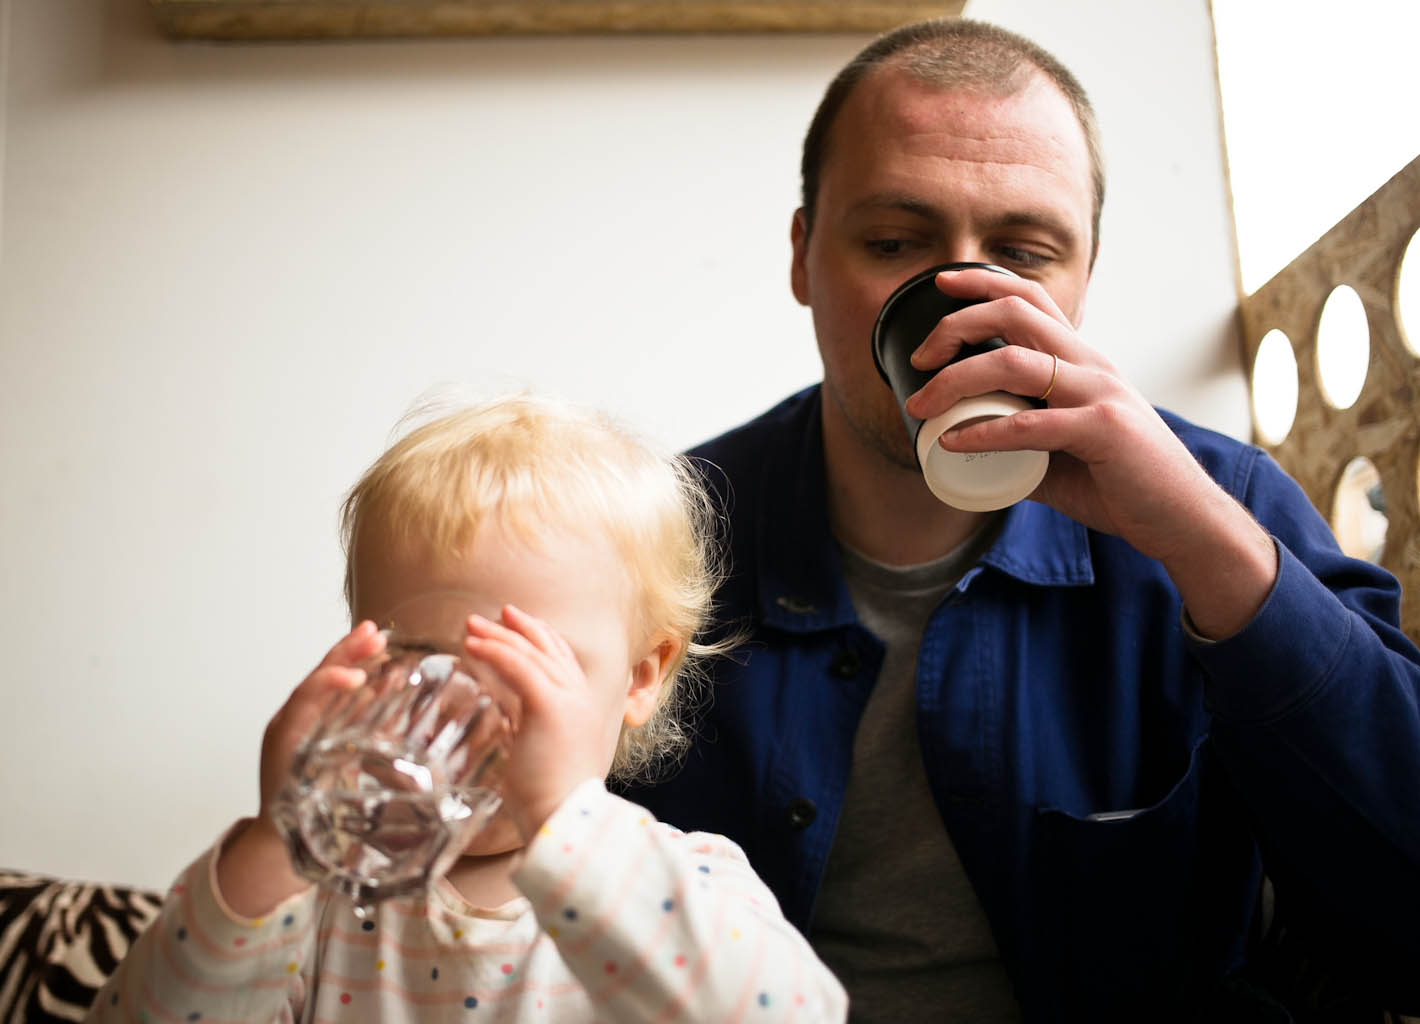 Father drinking takeaway coffee watching young daughter drink a glass of water